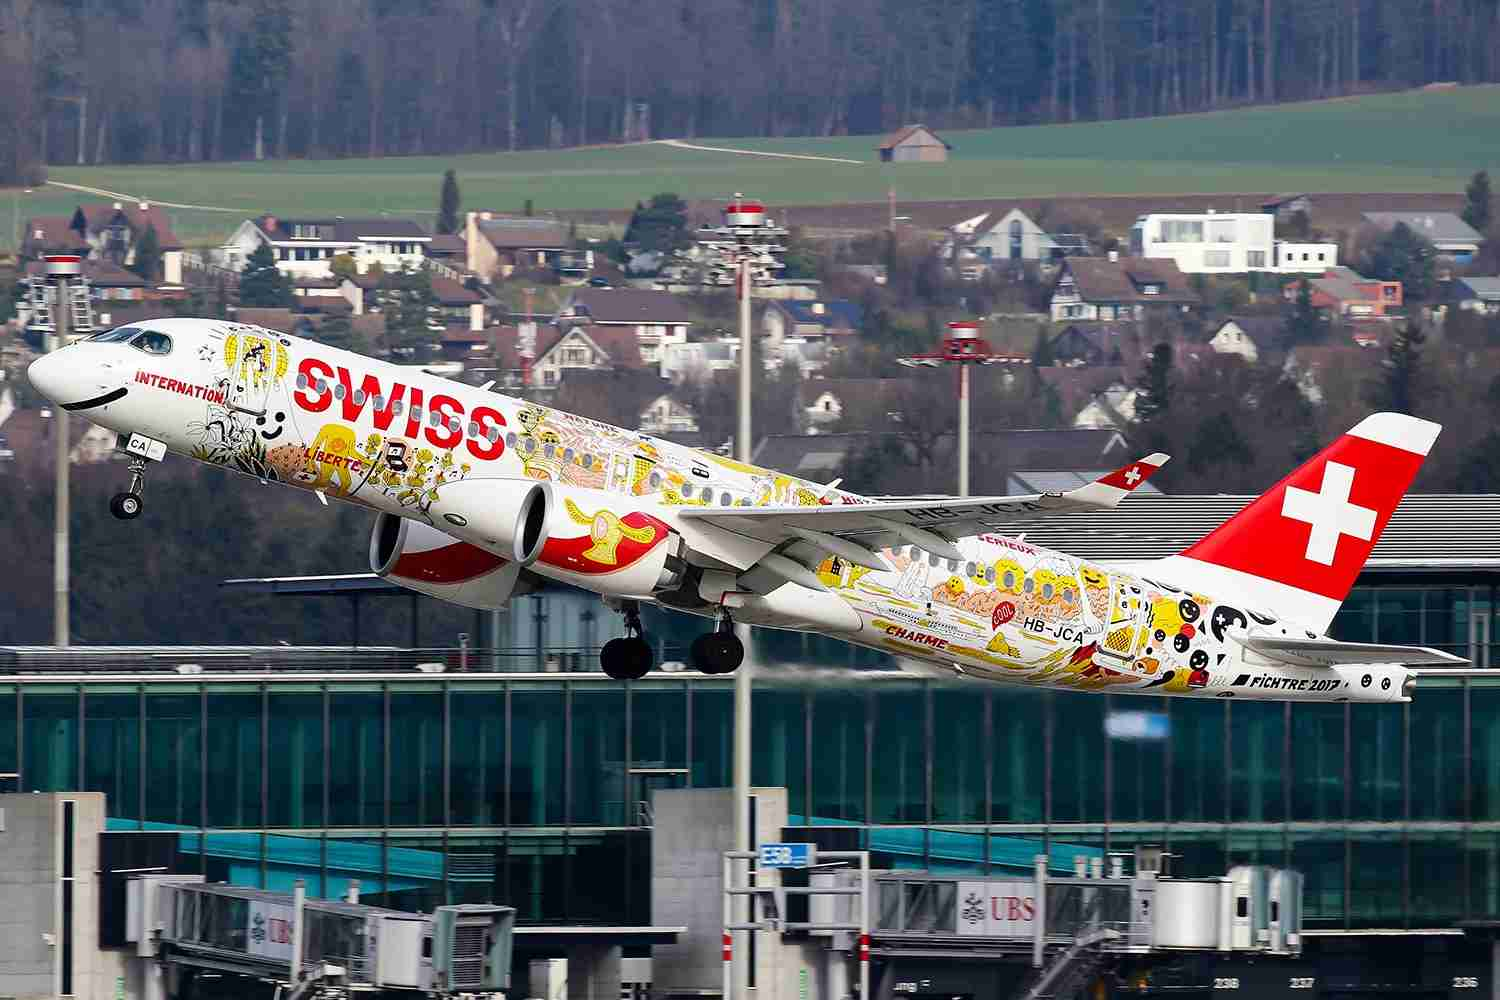 A Swiss Bombardier CS100 departing Zurich for Dusseldorf. (Photo by C. V. Grinsven/SOPA Images/LightRocket via Getty Images)